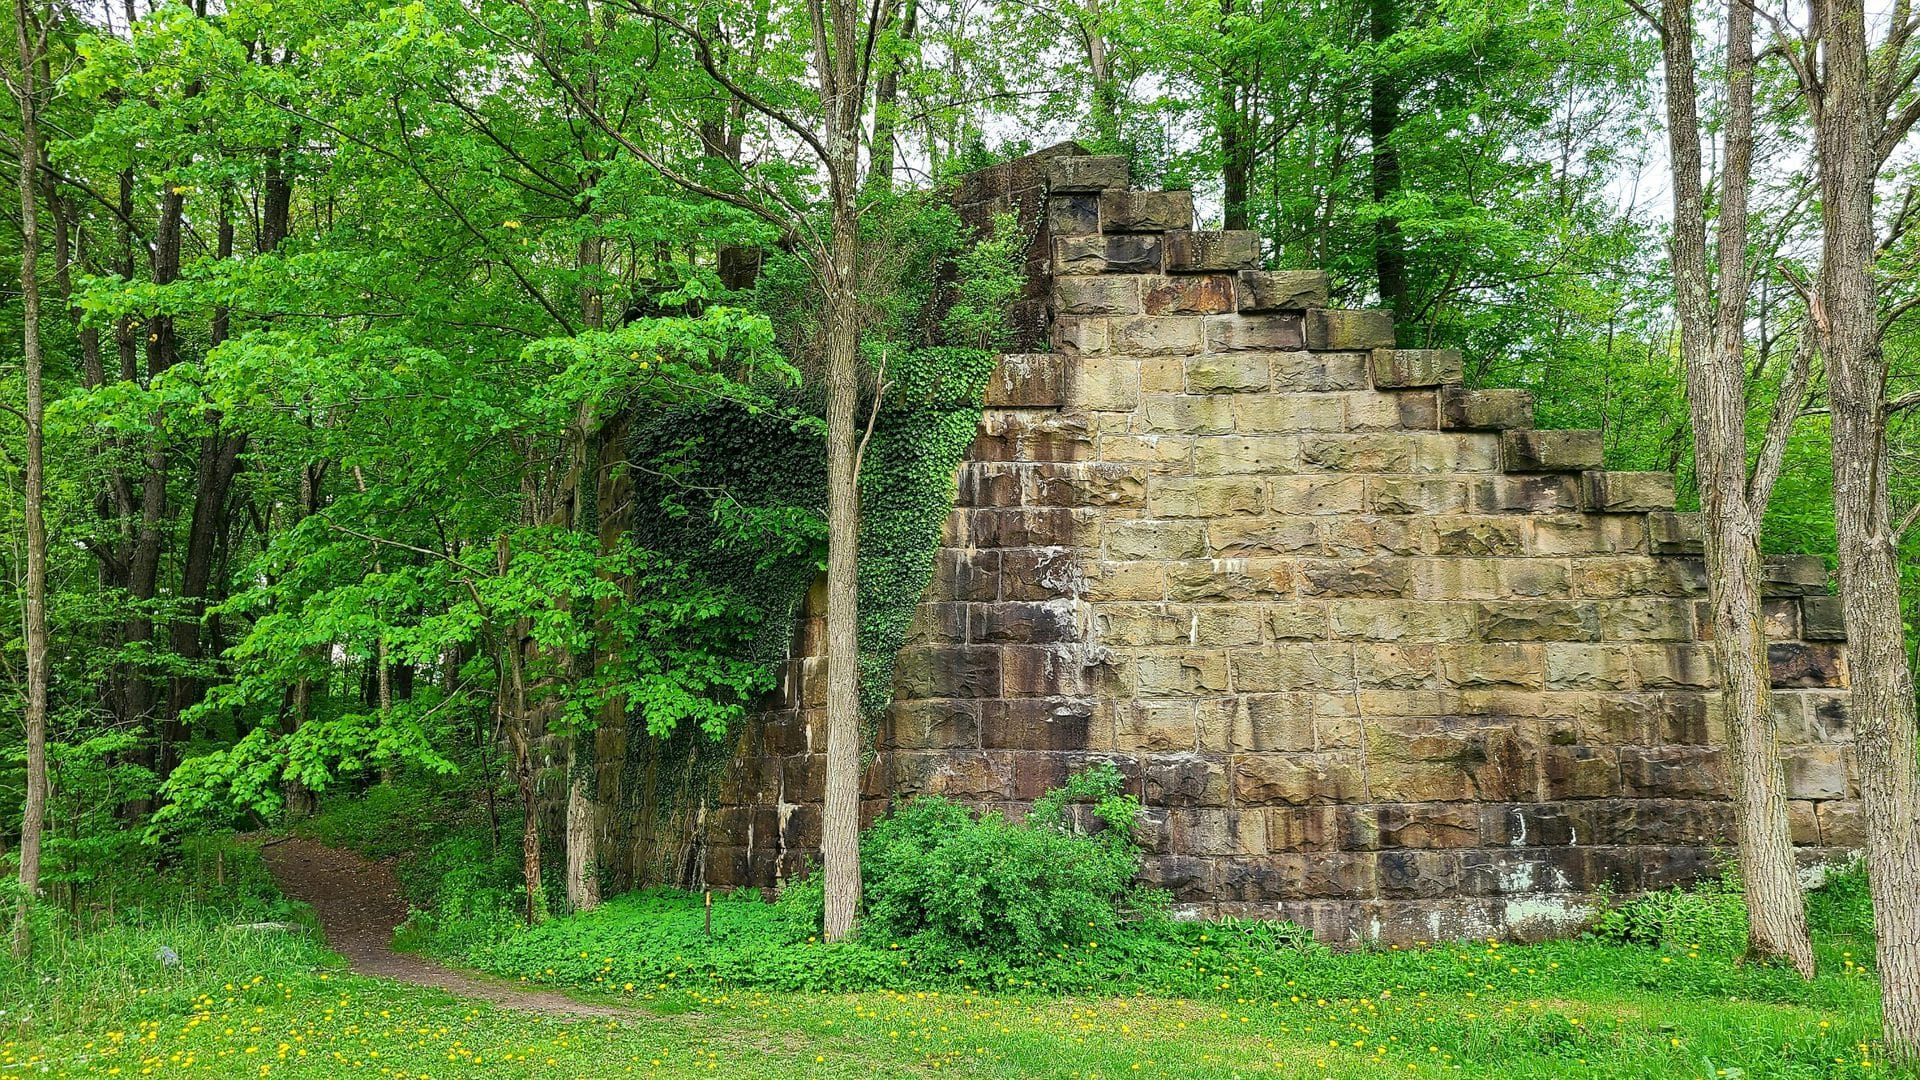 Stone bridge abutment covered in vines and trees.